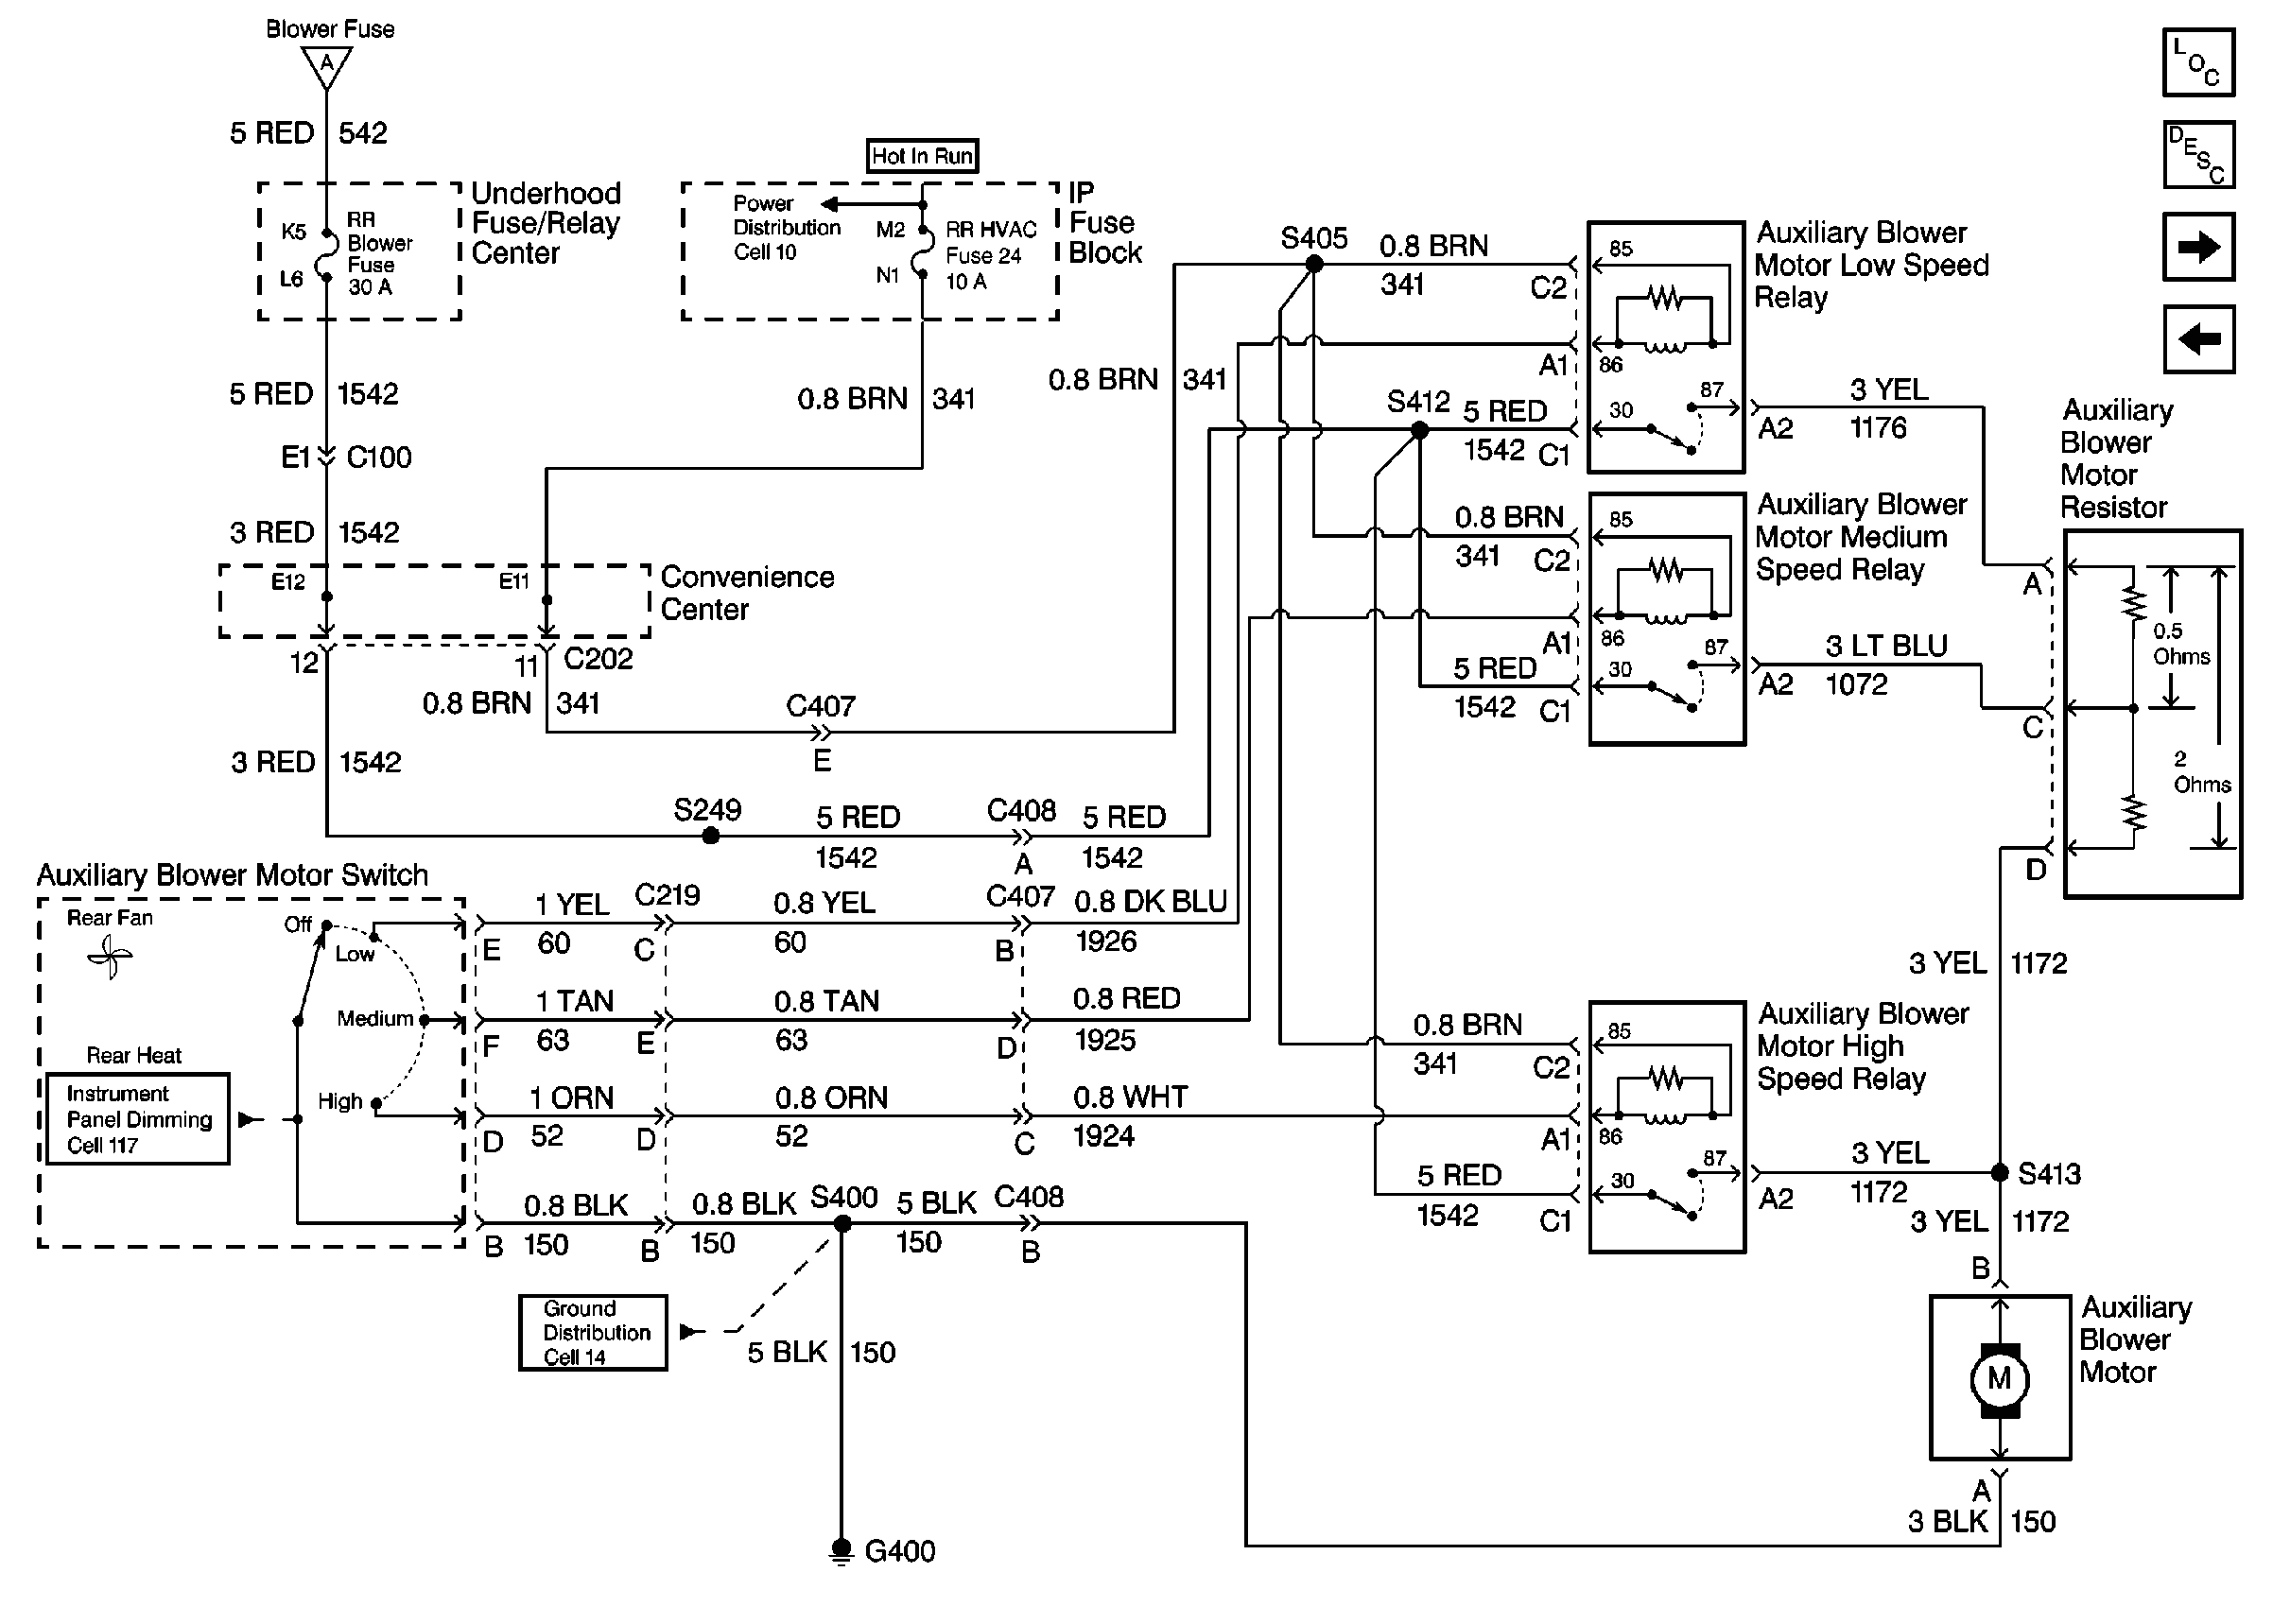 wiring diagrams 2006 6 chevy express van furthermore 2001 chevrolet chevy express van wiring diagrams wiring